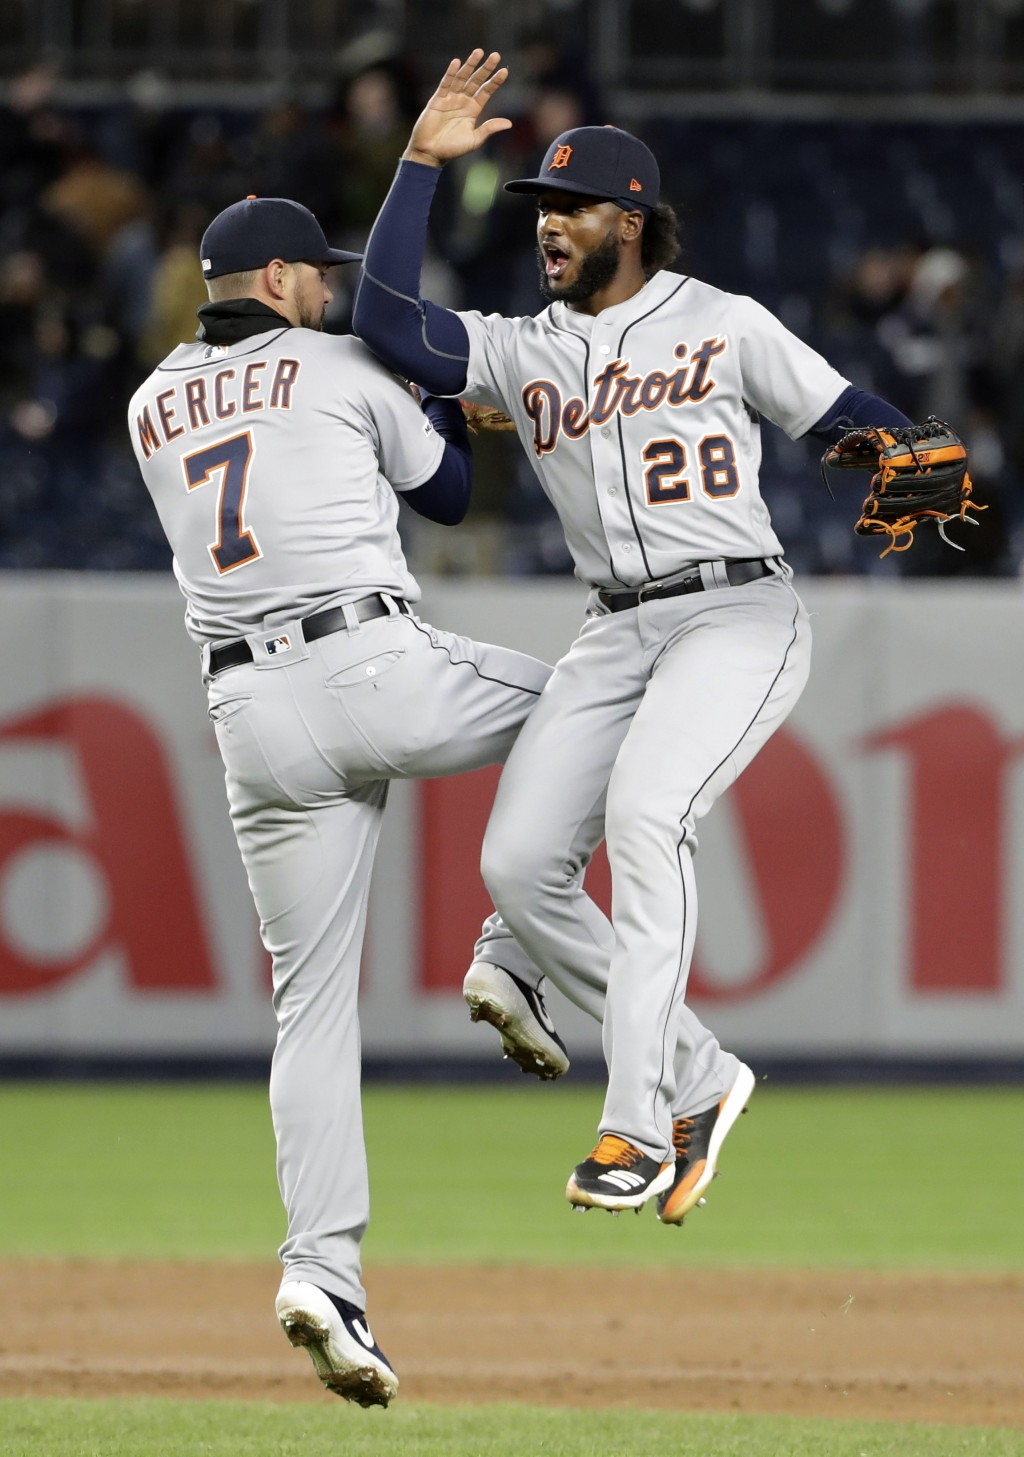 Detroit Tigers shortstop Jordy Mercer (7) and outfielder Niko Goodrum (28) celebrate after defeating the New York Yankees in a baseball game against t